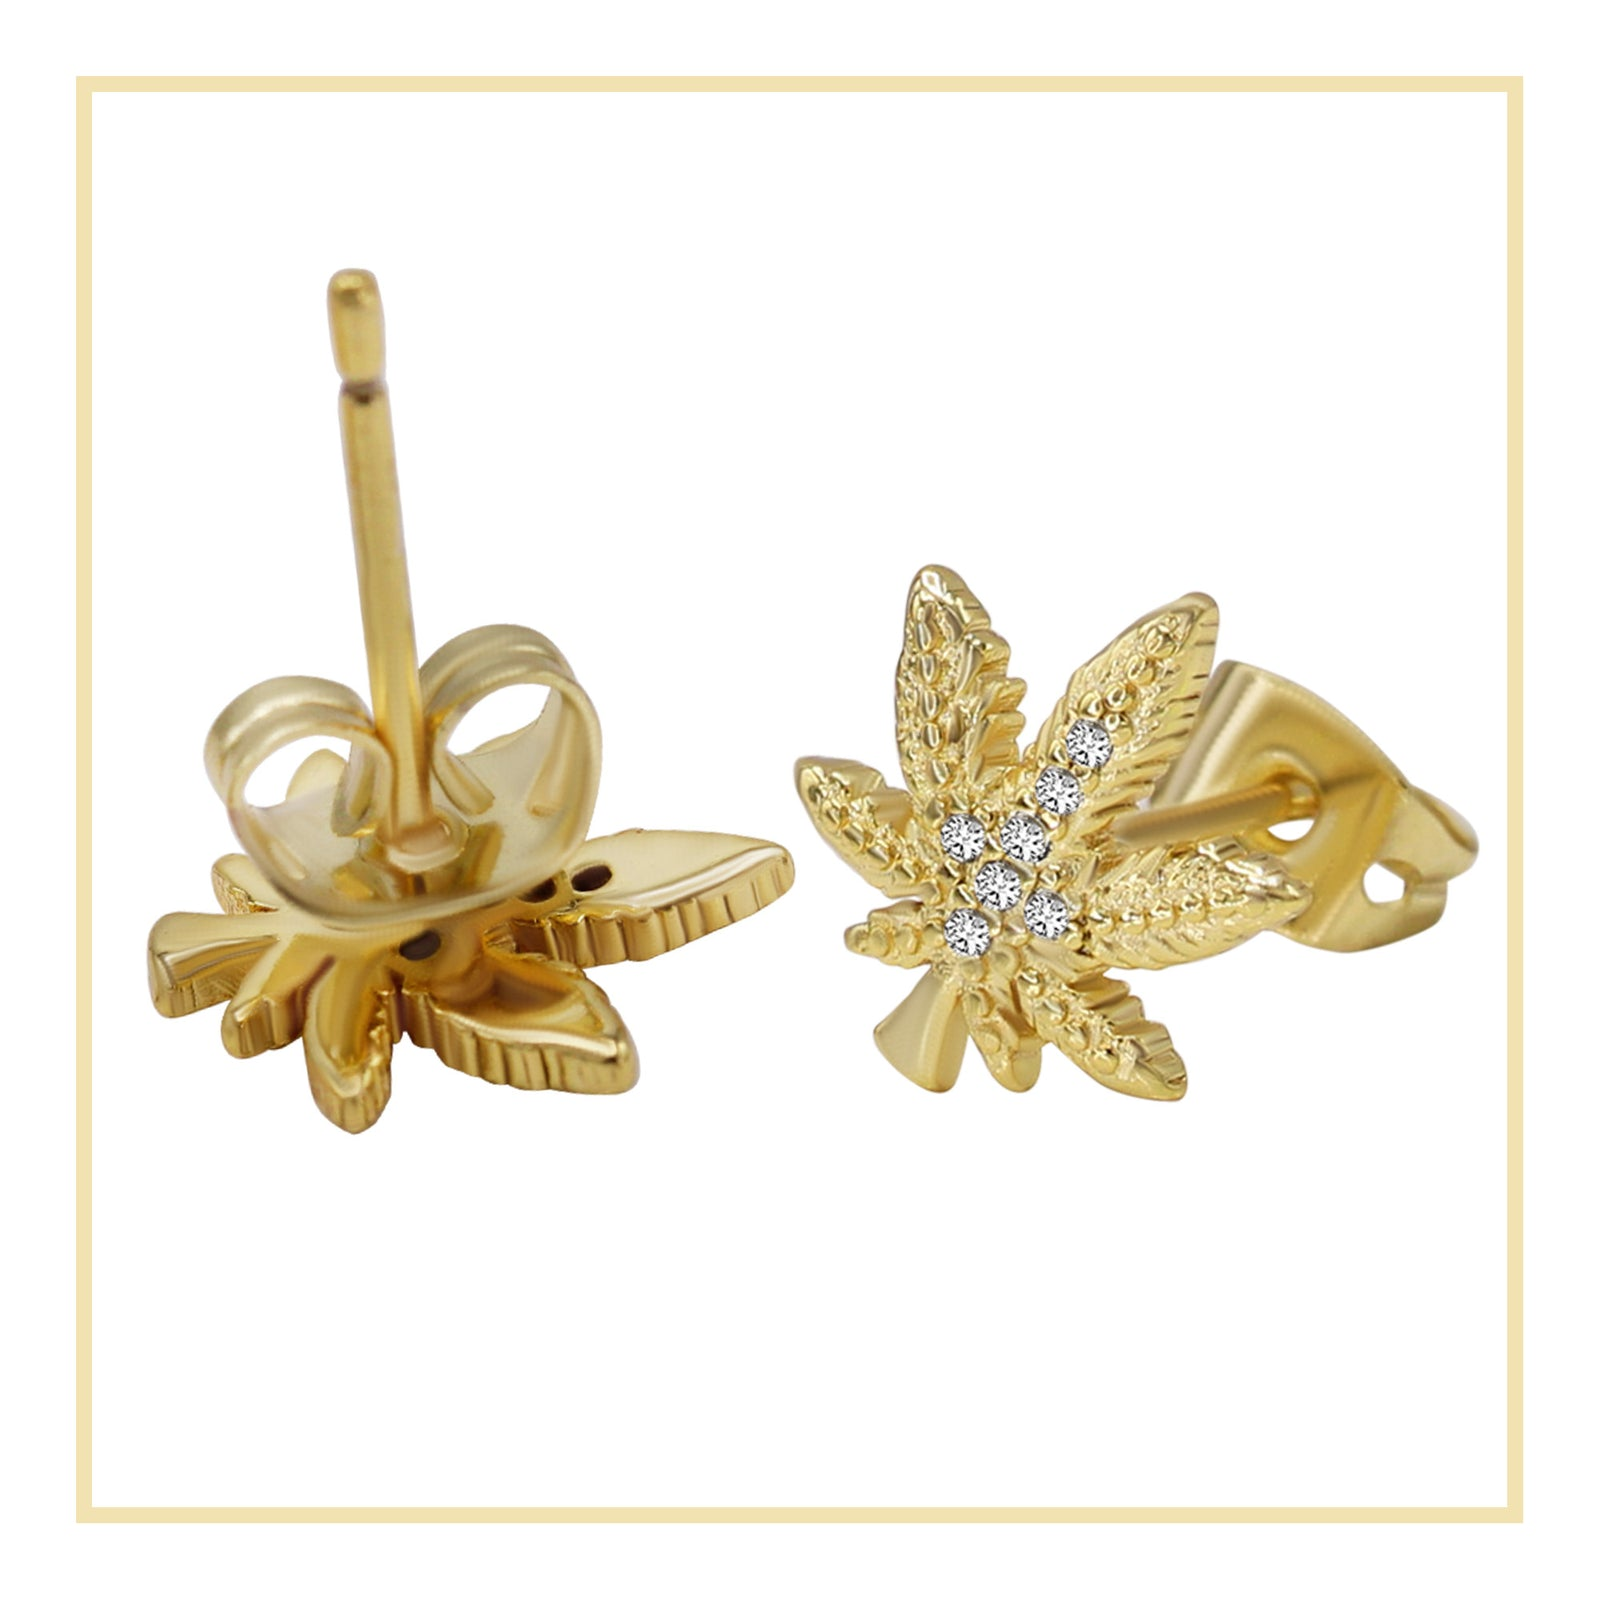 Cannabis Leaf Stud 14K Gold Plated CZ Stud Earrings Cubic Zirconia Ear Piercing Fashion Jewelry